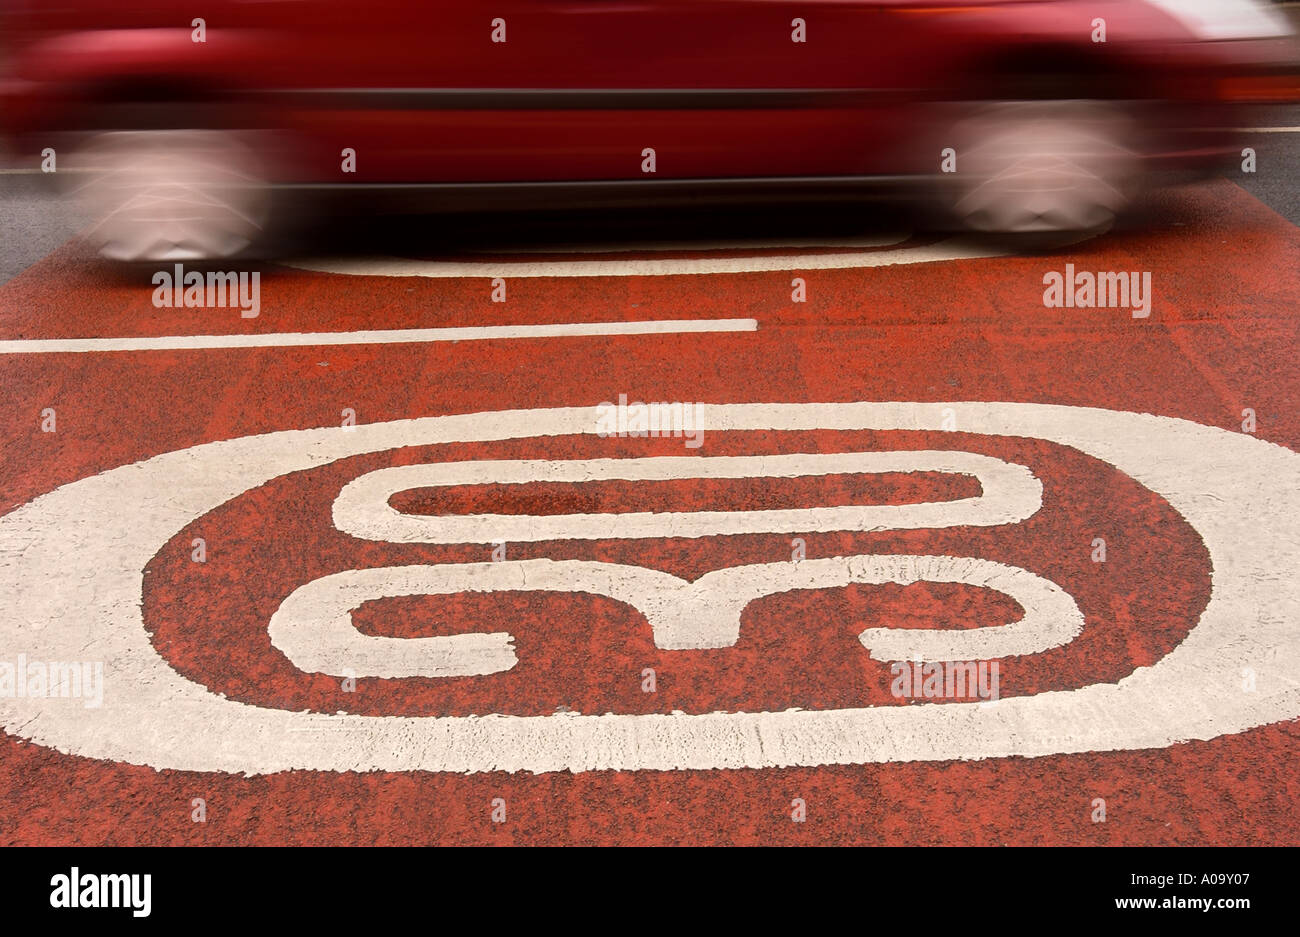 A CAR PASSES OVER THIRTY MILES PER HOUR SPEED WARNINGS PAINTED ONTO THE ROAD UK - Stock Image